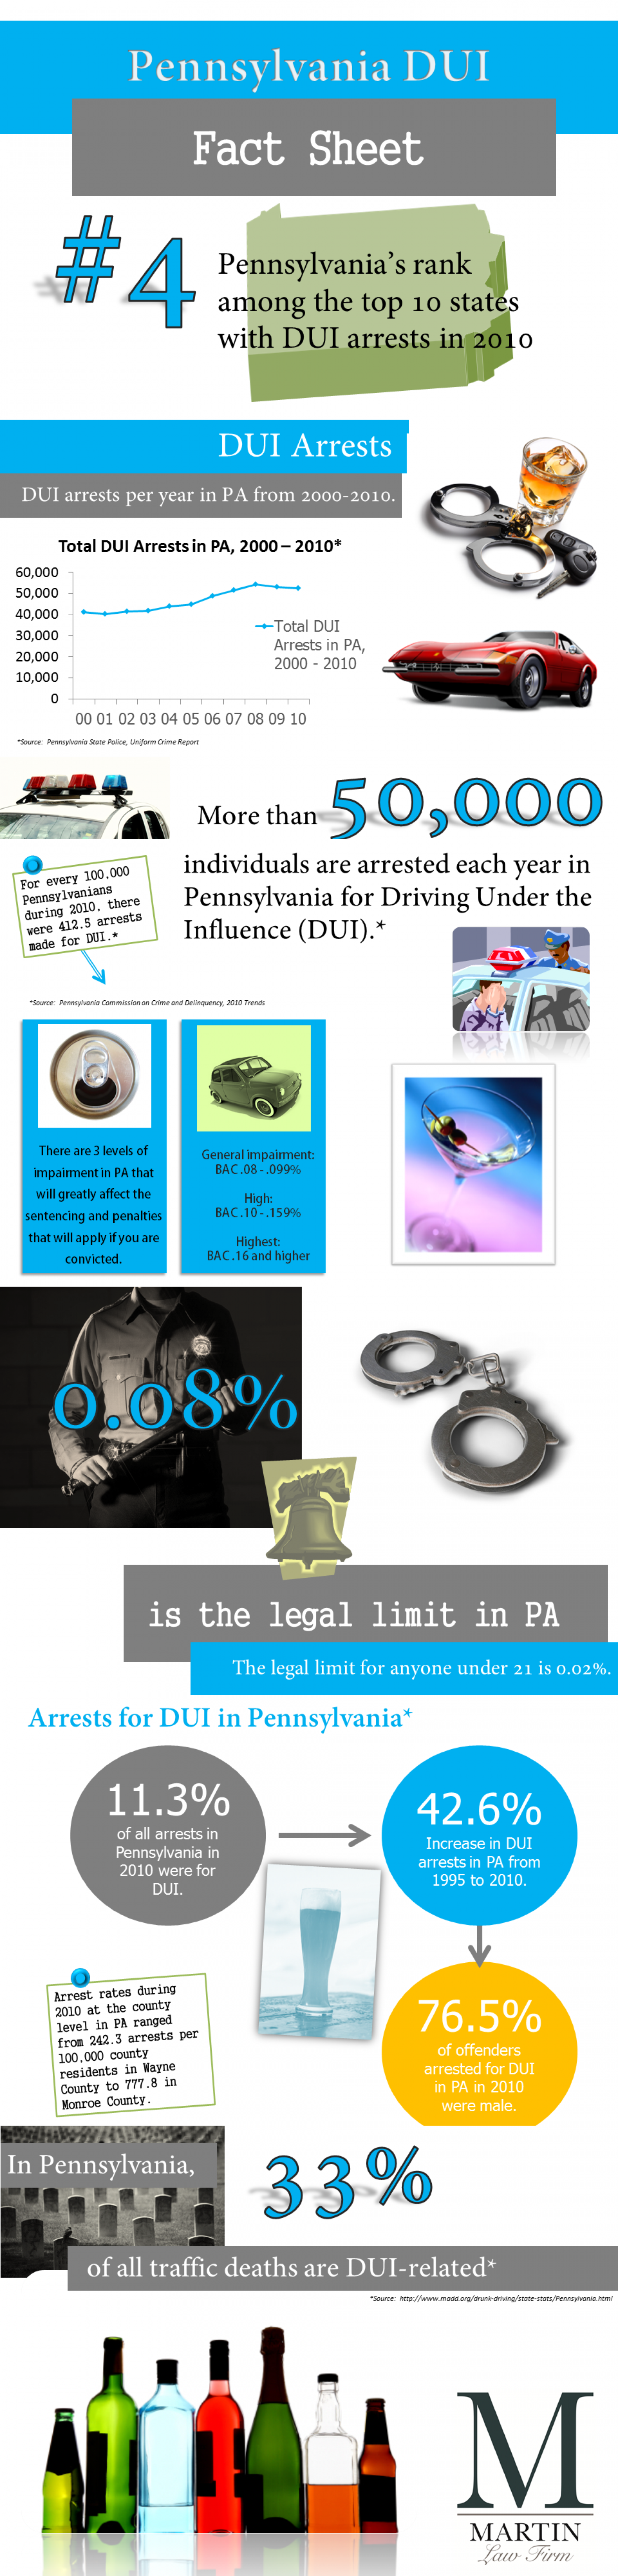 PA DUI Fact Sheet Infographic Infographic